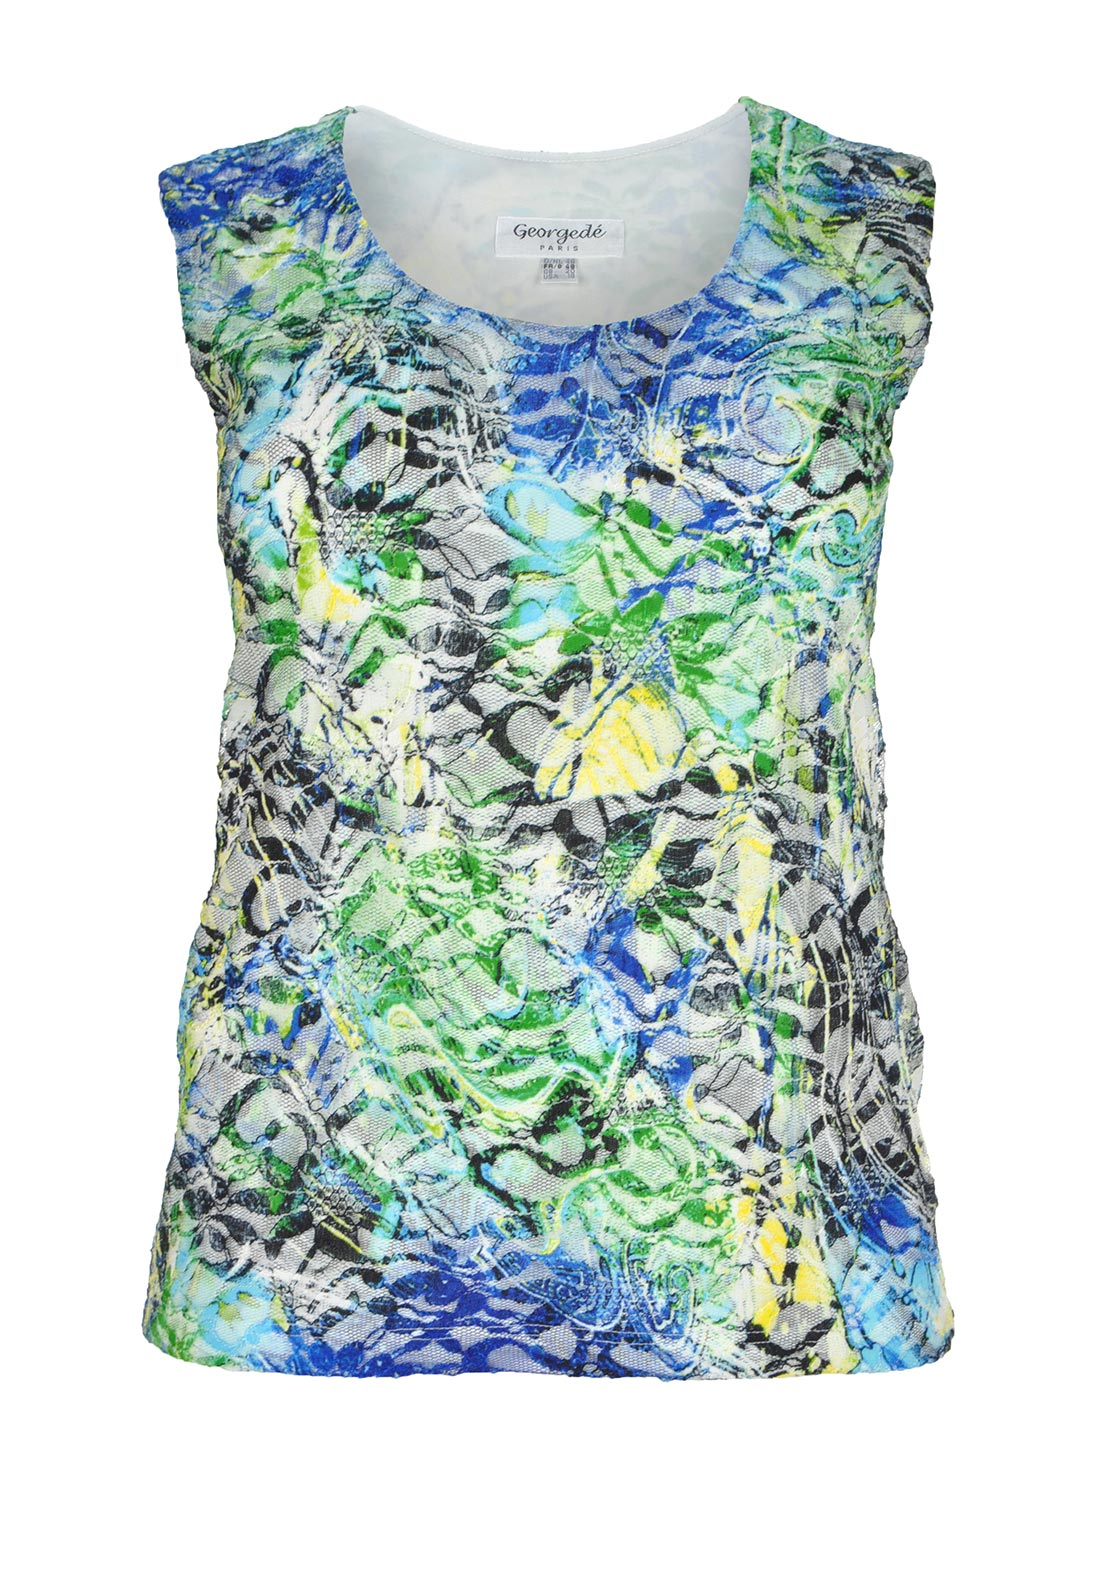 Georgede Printed Lace Sleeveless Top, Multi-Coloured